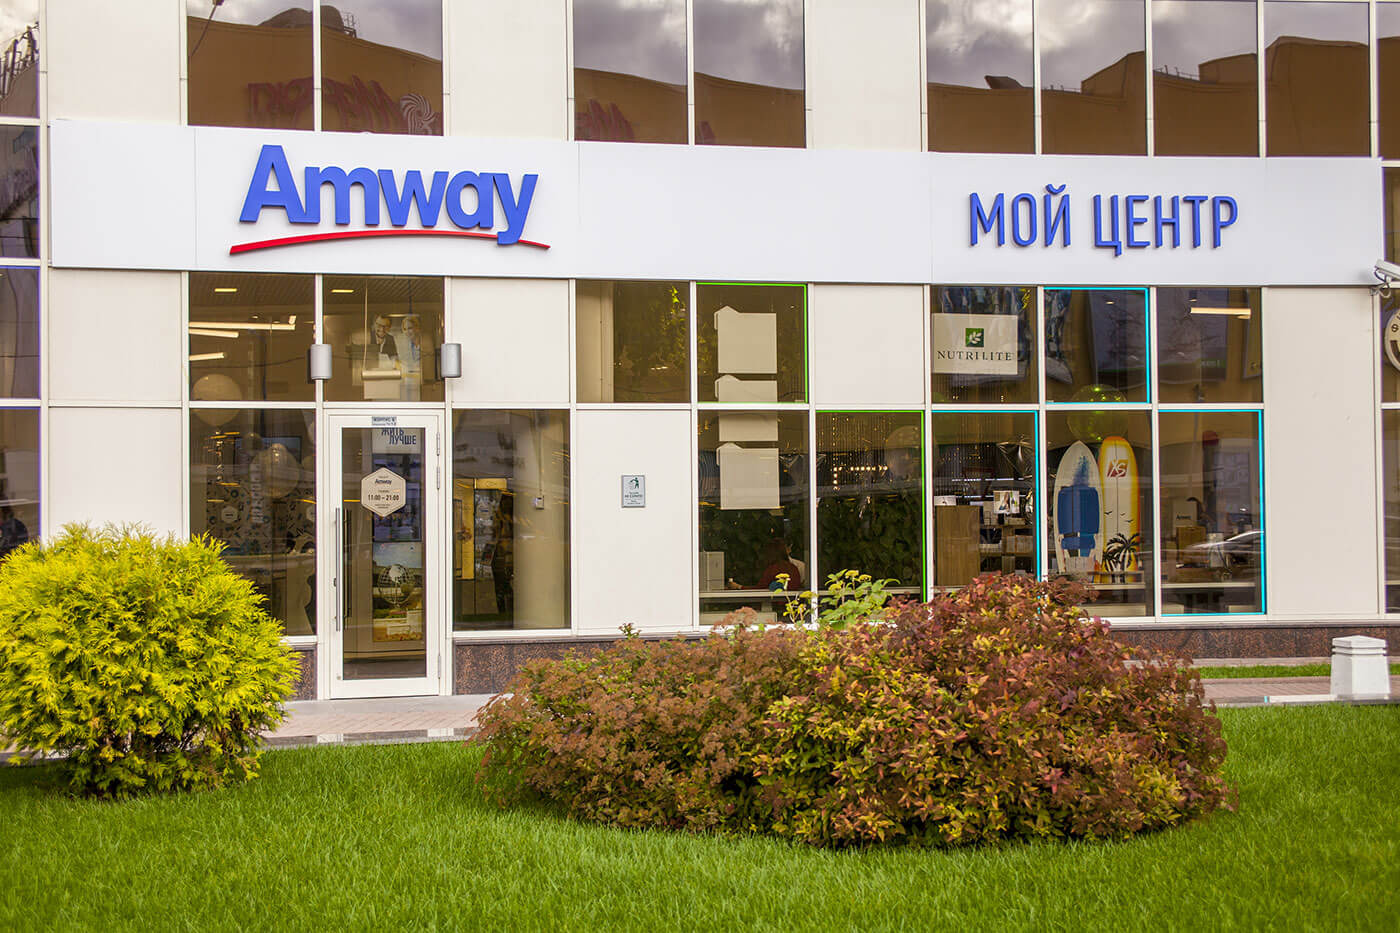 amway_5a.jpg